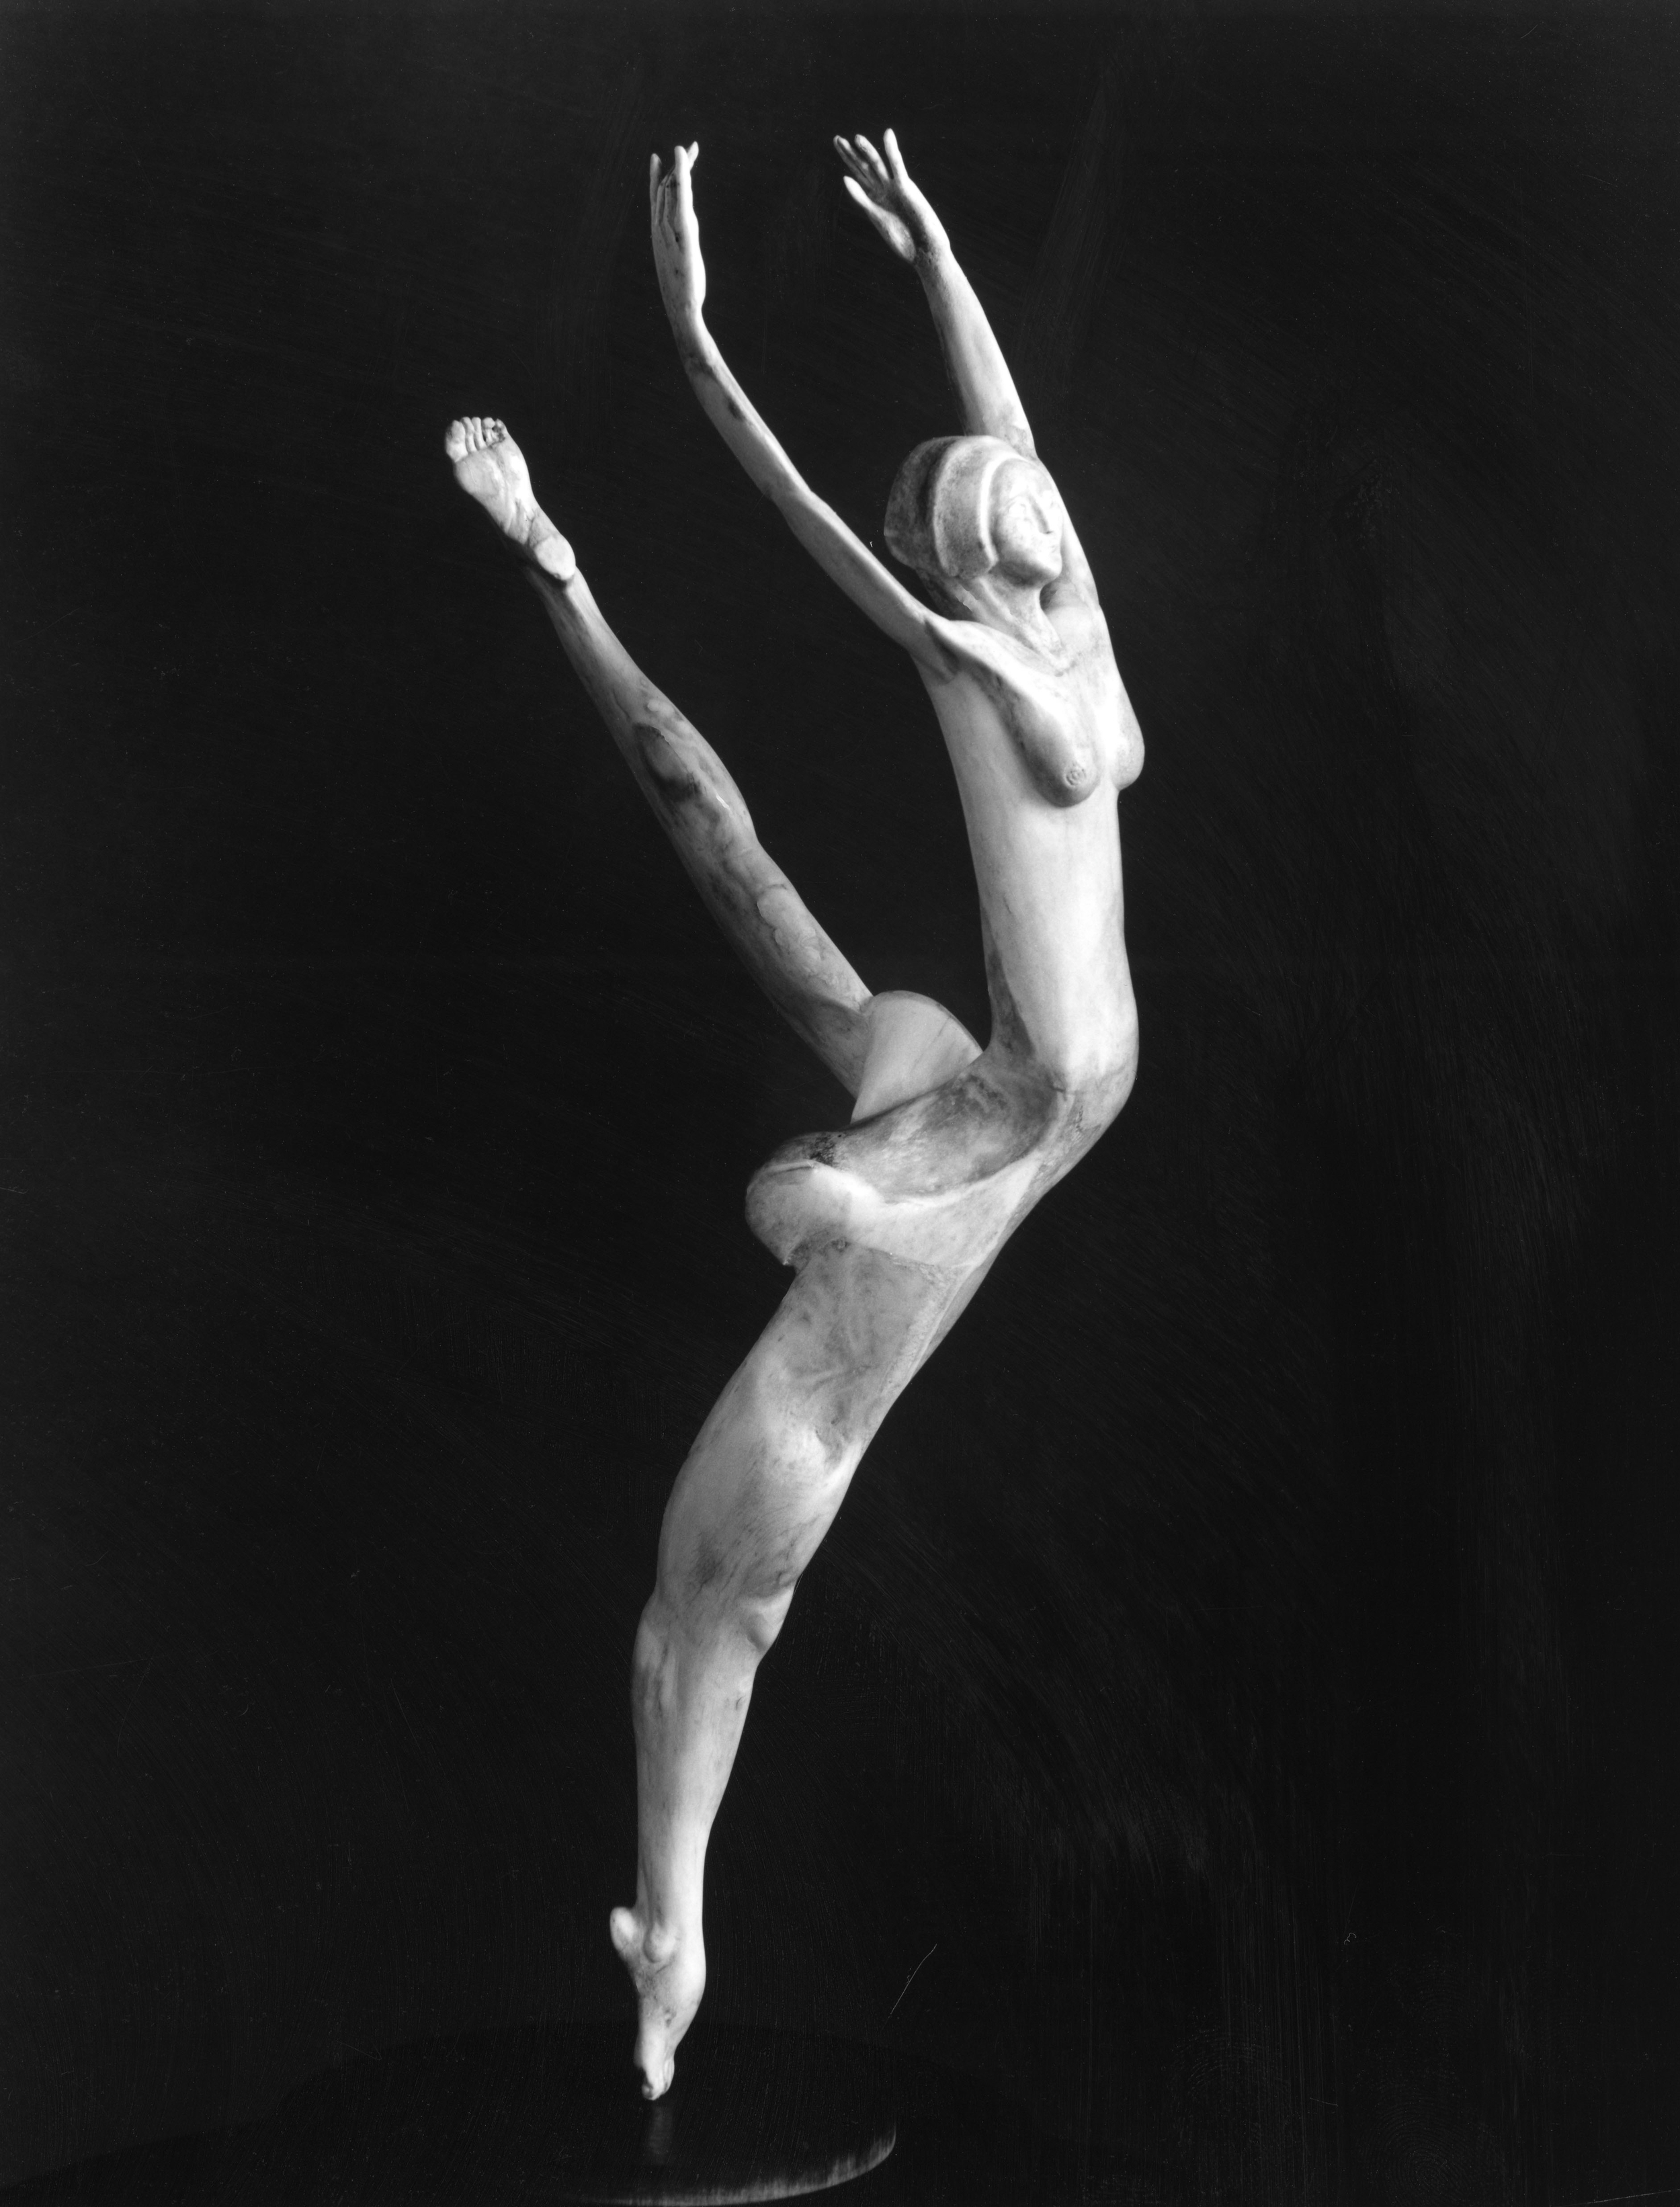 Arabesque - Ballet Dancer Bone Sculpture by Jerry Hardin